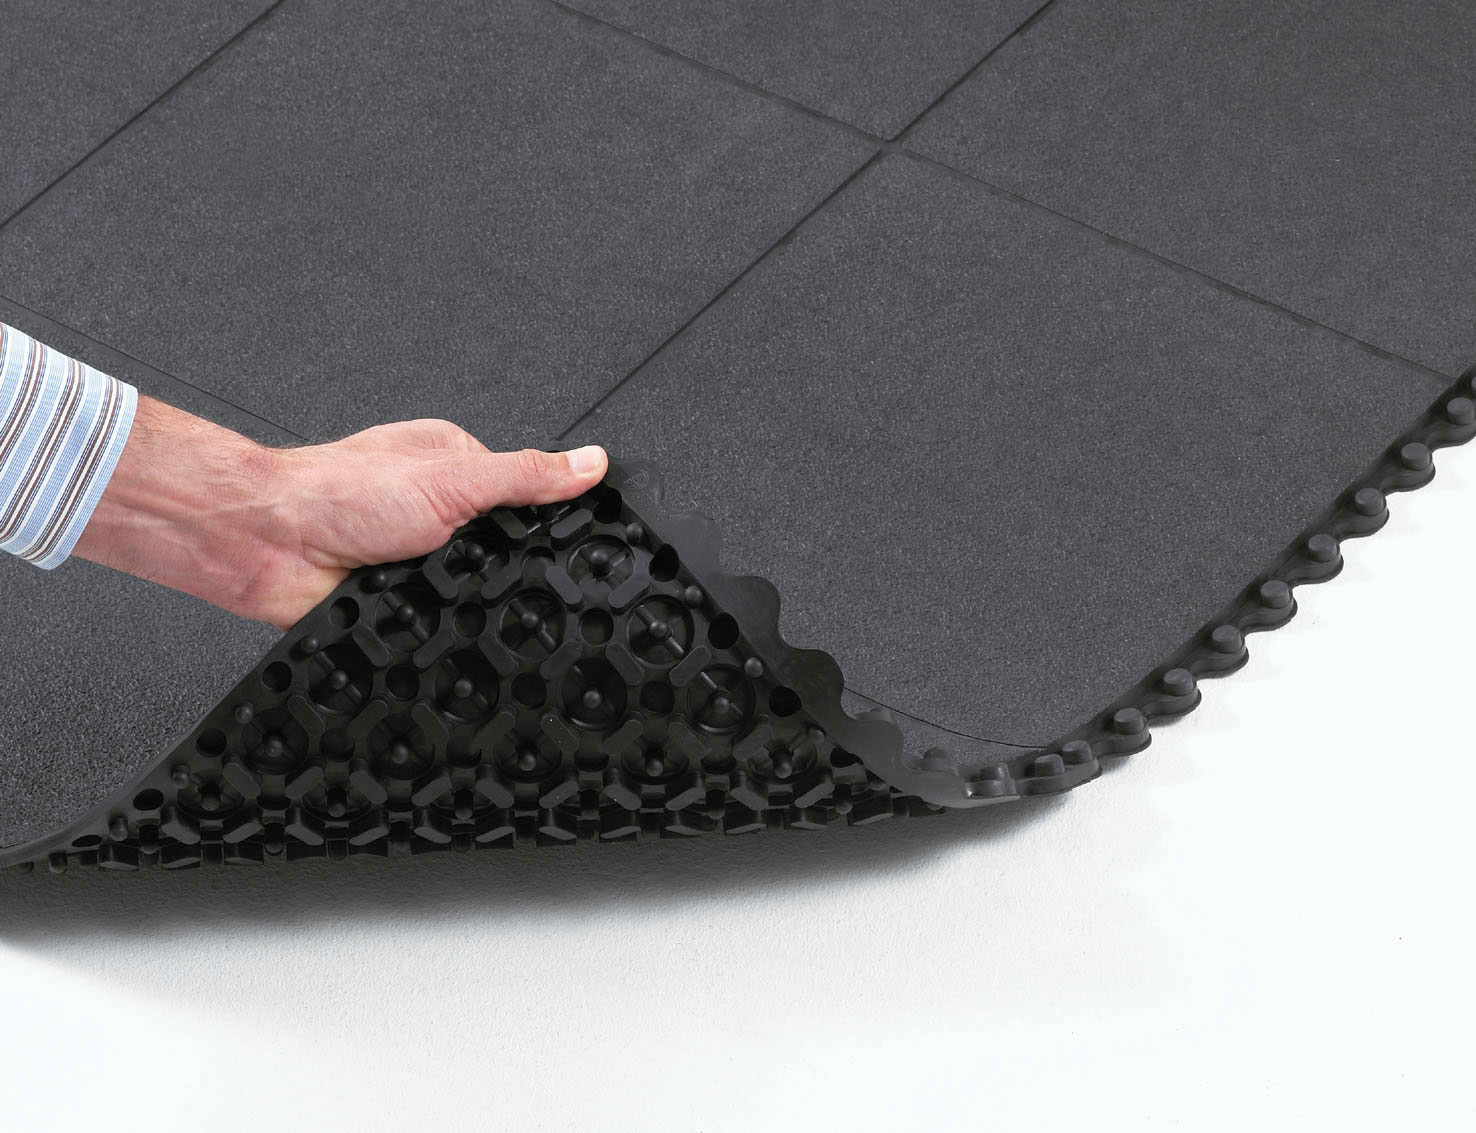 Cushion-Ease Safety Anti-Fatigue Mat - Dry Area